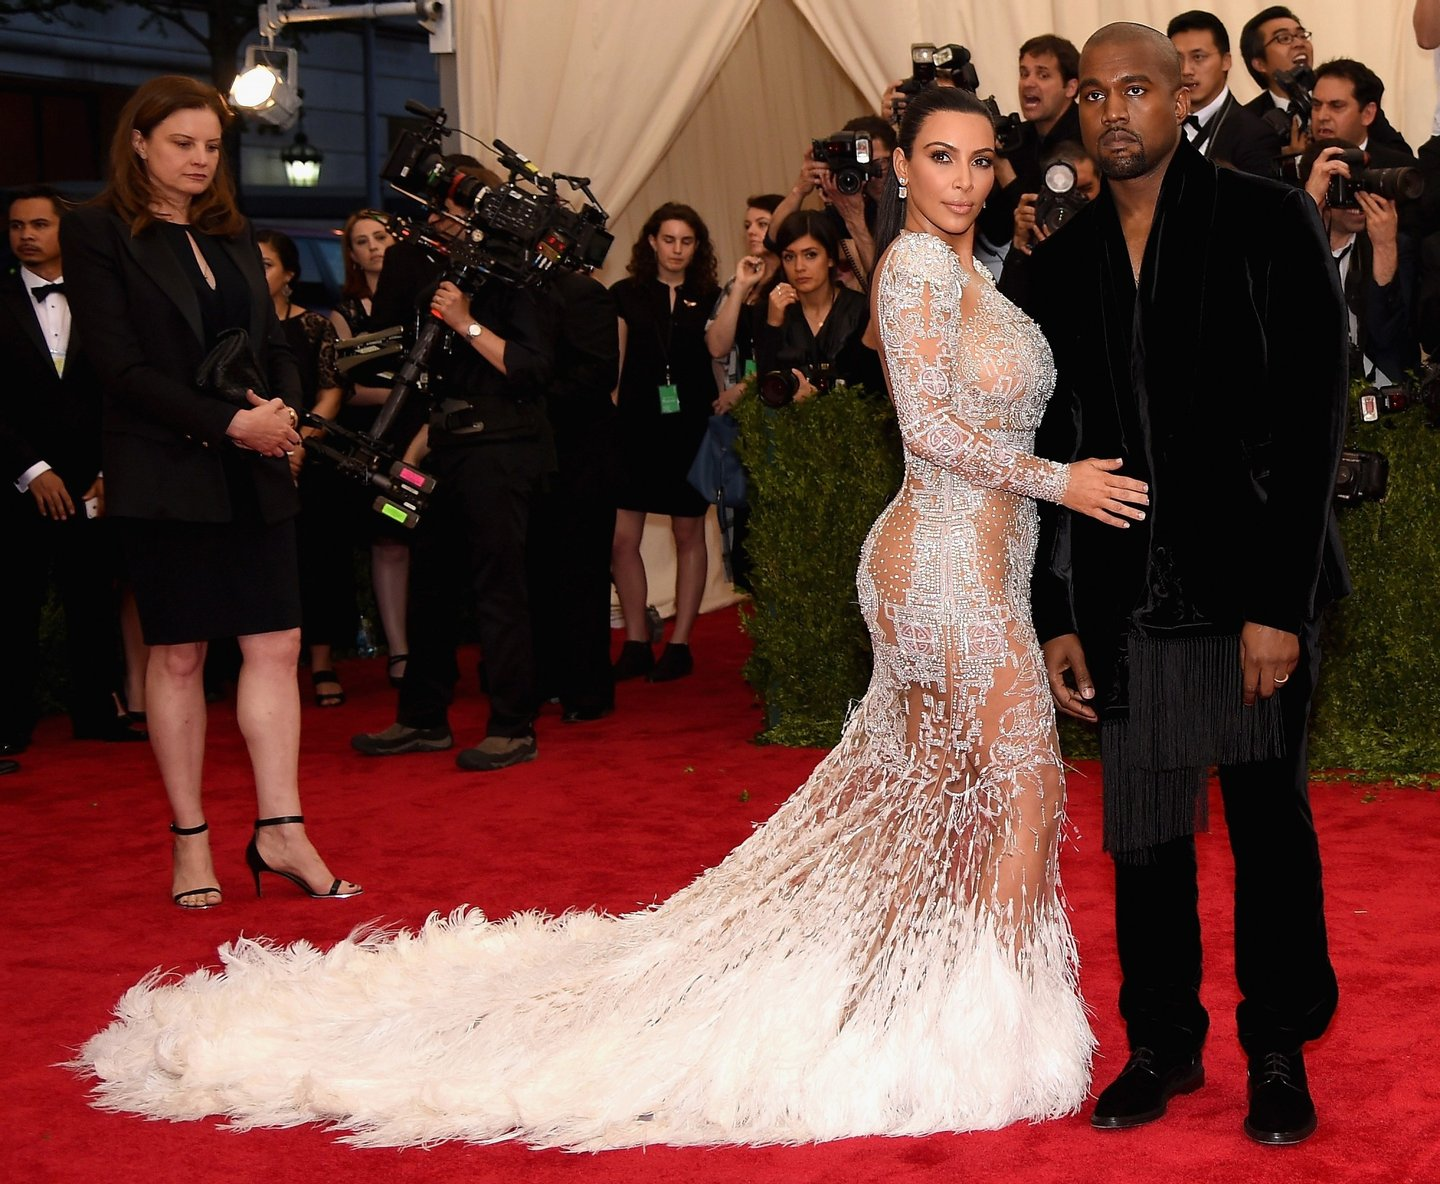 "NEW YORK, NY - MAY 04: Kim Kardashian West (L) and Kanye West attend the ""China: Through The Looking Glass"" Costume Institute Benefit Gala at the Metropolitan Museum of Art on May 4, 2015 in New York City. (Photo by Dimitrios Kambouris/Getty Images) *** Local Caption *** Kim Kardashian West; Kanye West"